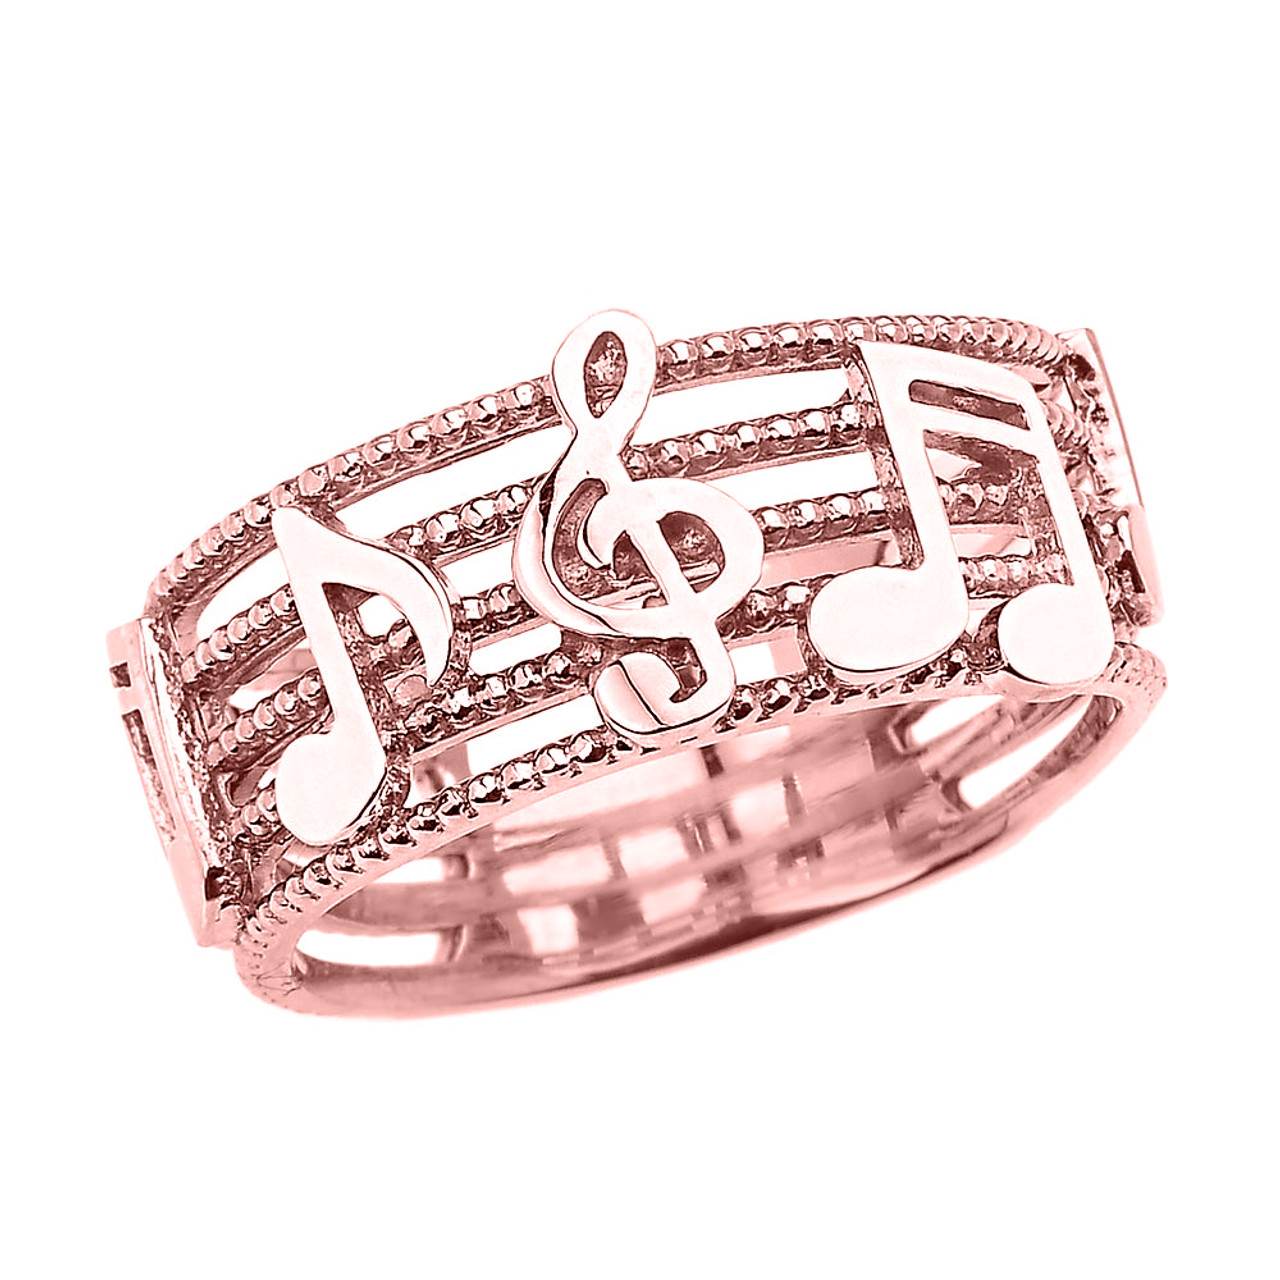 Rose Gold Treble Clef with Musical Notes Band Ring 8.0 MM